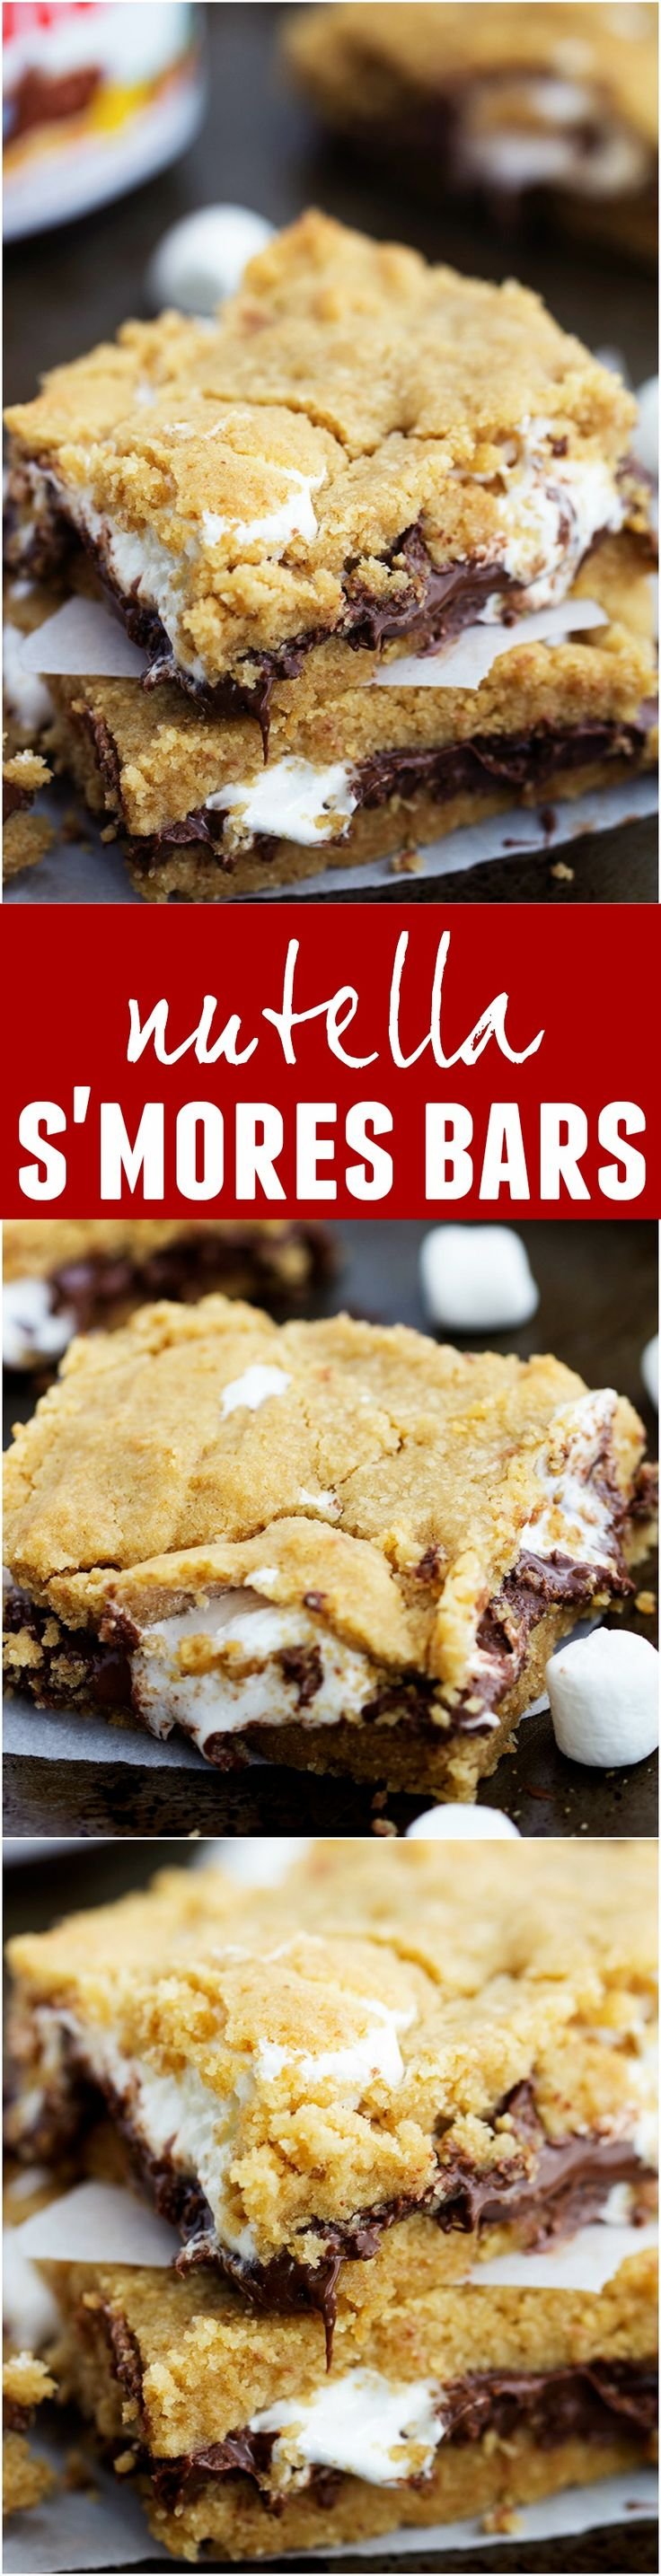 Nutella S'mores Bars - Ooey and gooey and one of the best treats EVER! So easy and no campfire required!